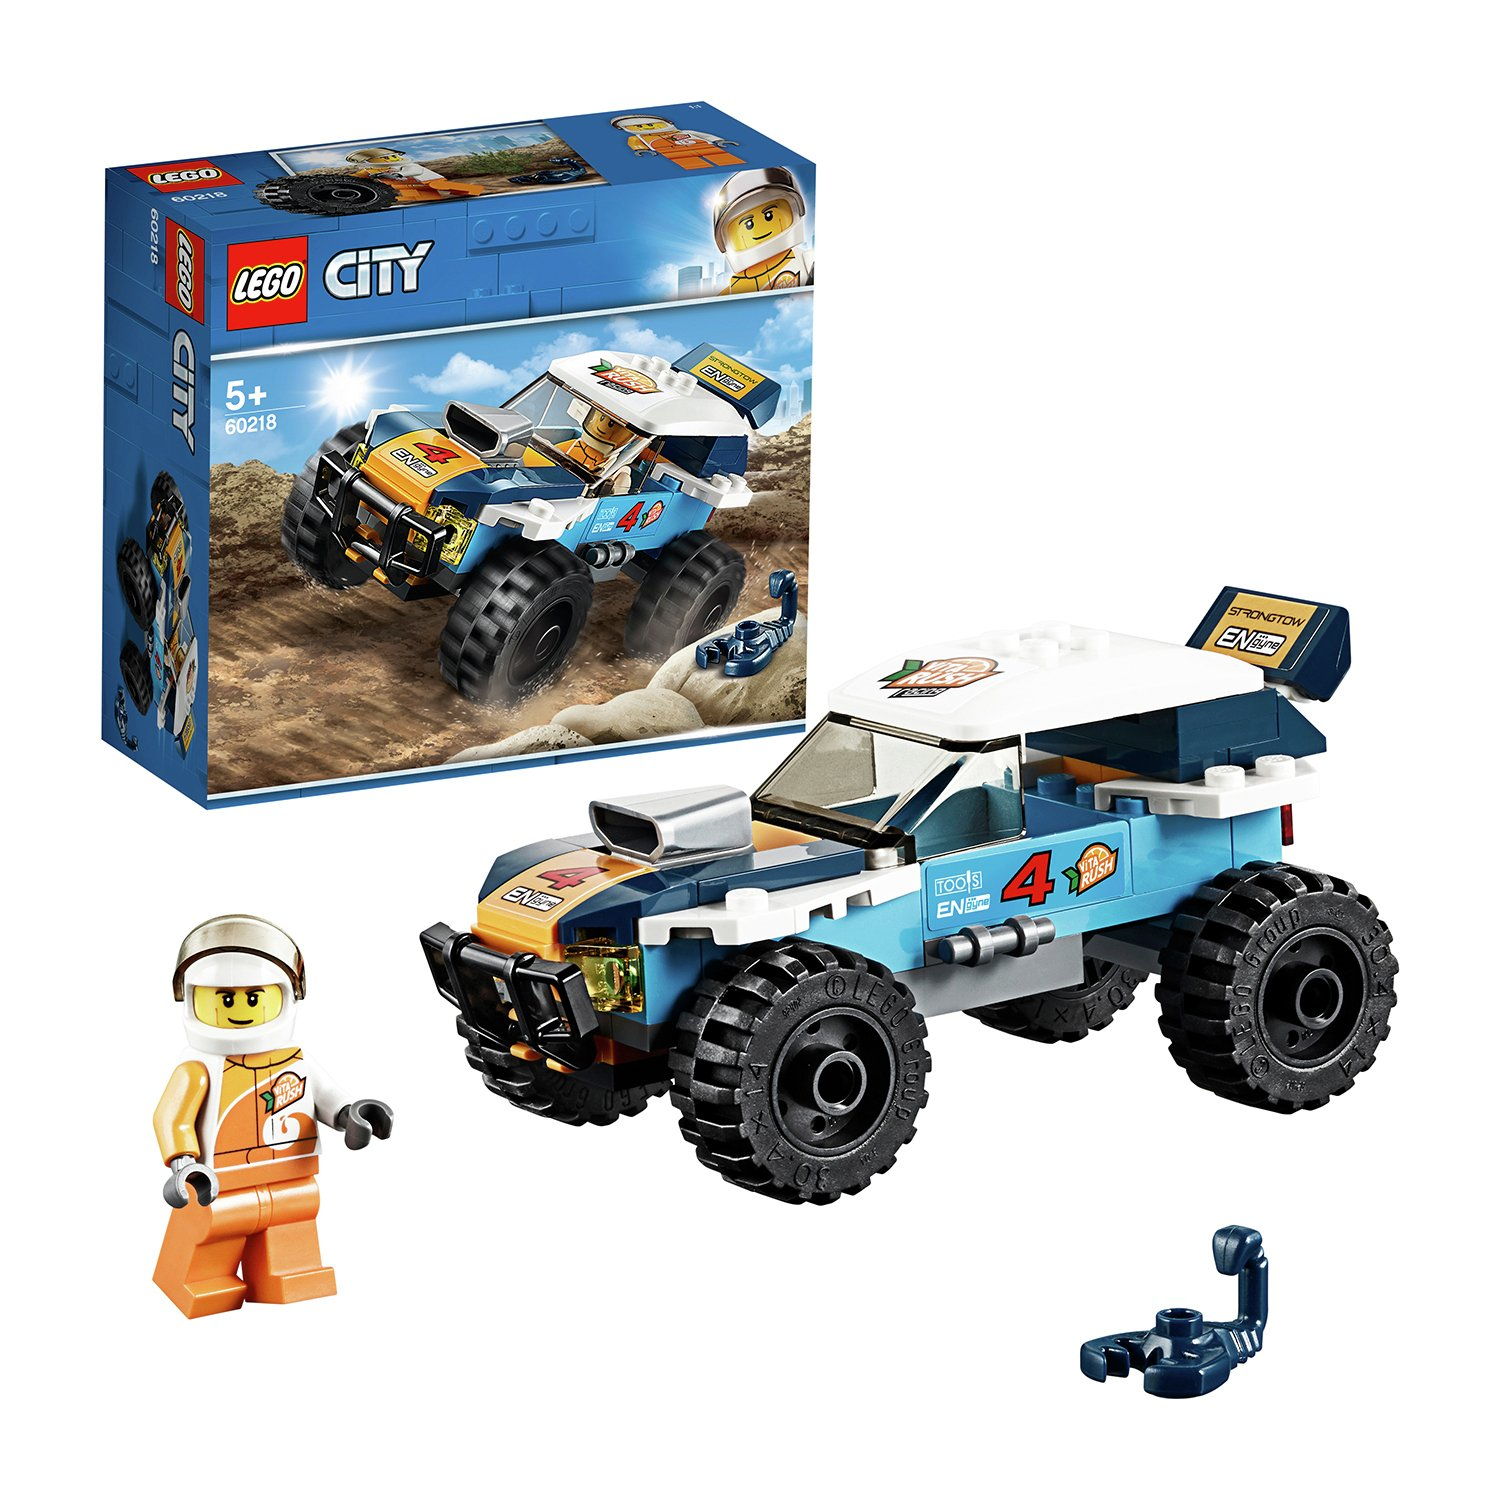 LEGO 60218 City Great Vehicles Desert Rally Racer Toy Car, Racing Construction Set for Kids Best Price and Cheapest